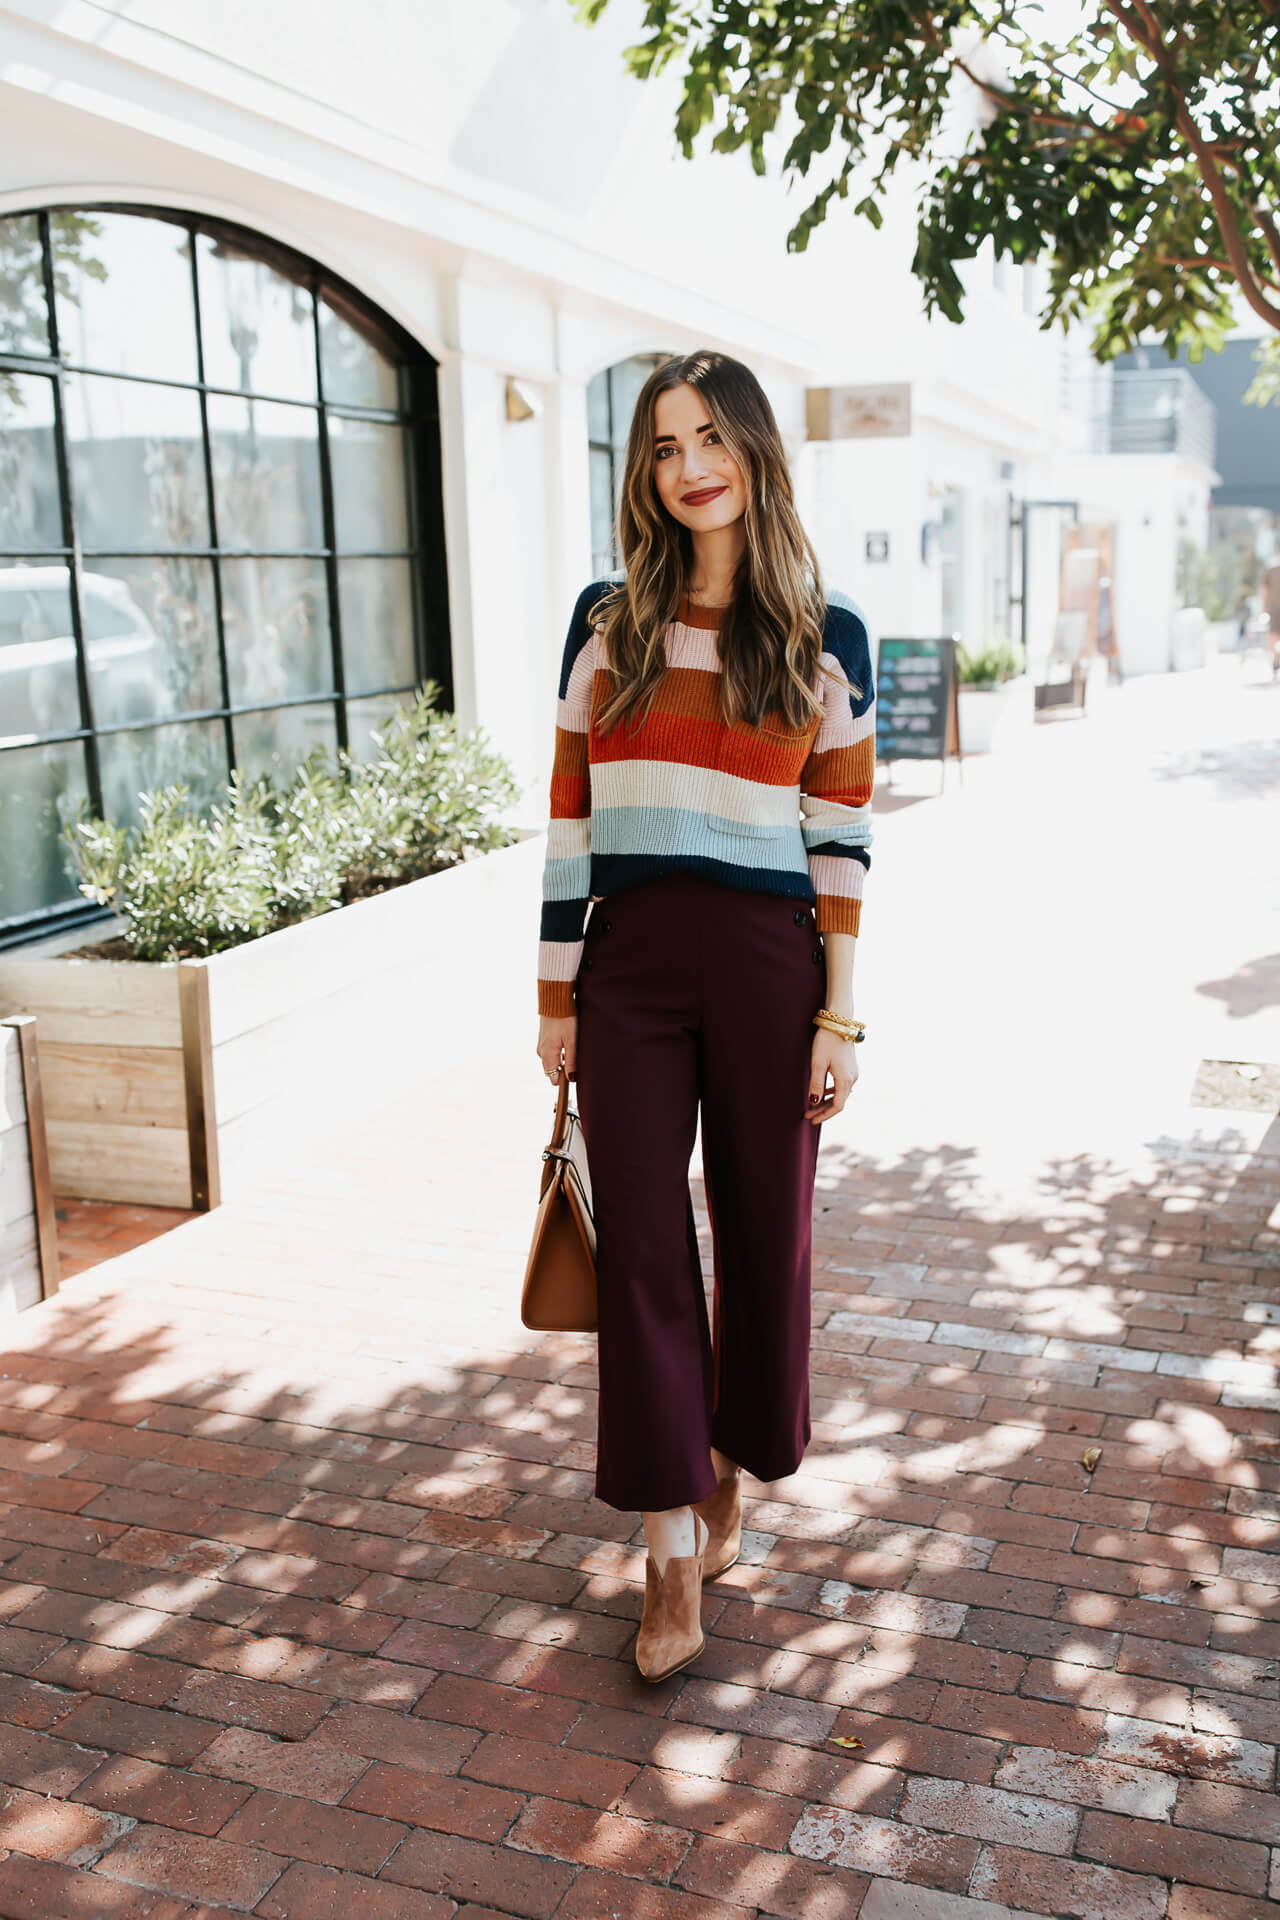 Cute sweater and pants combos for fall!- M Loves M @marmar